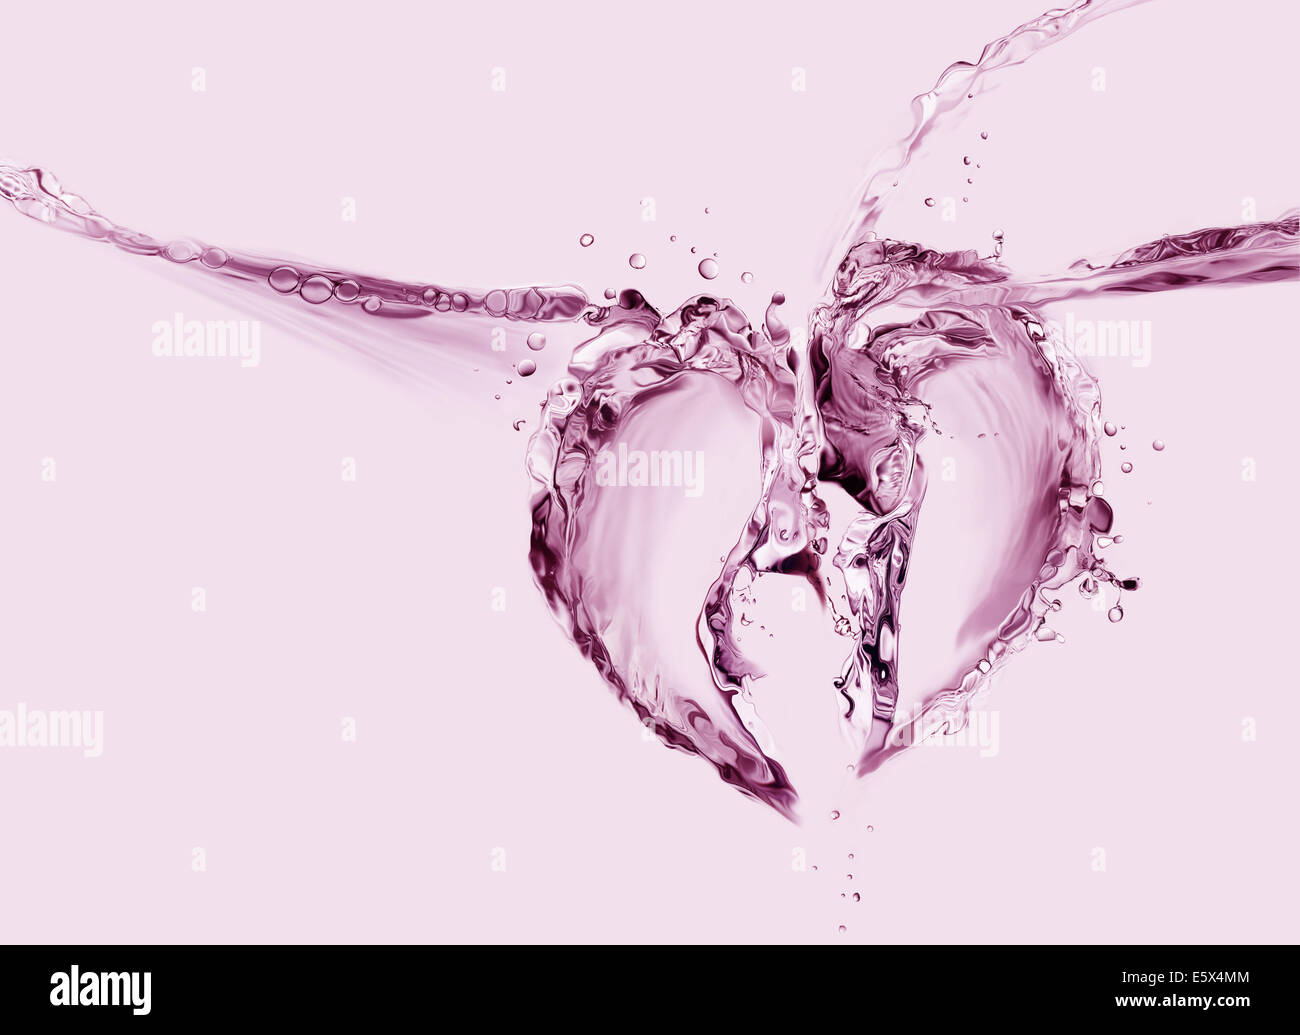 A broken heart made of red liquid splashing in two pieces. - Stock Image